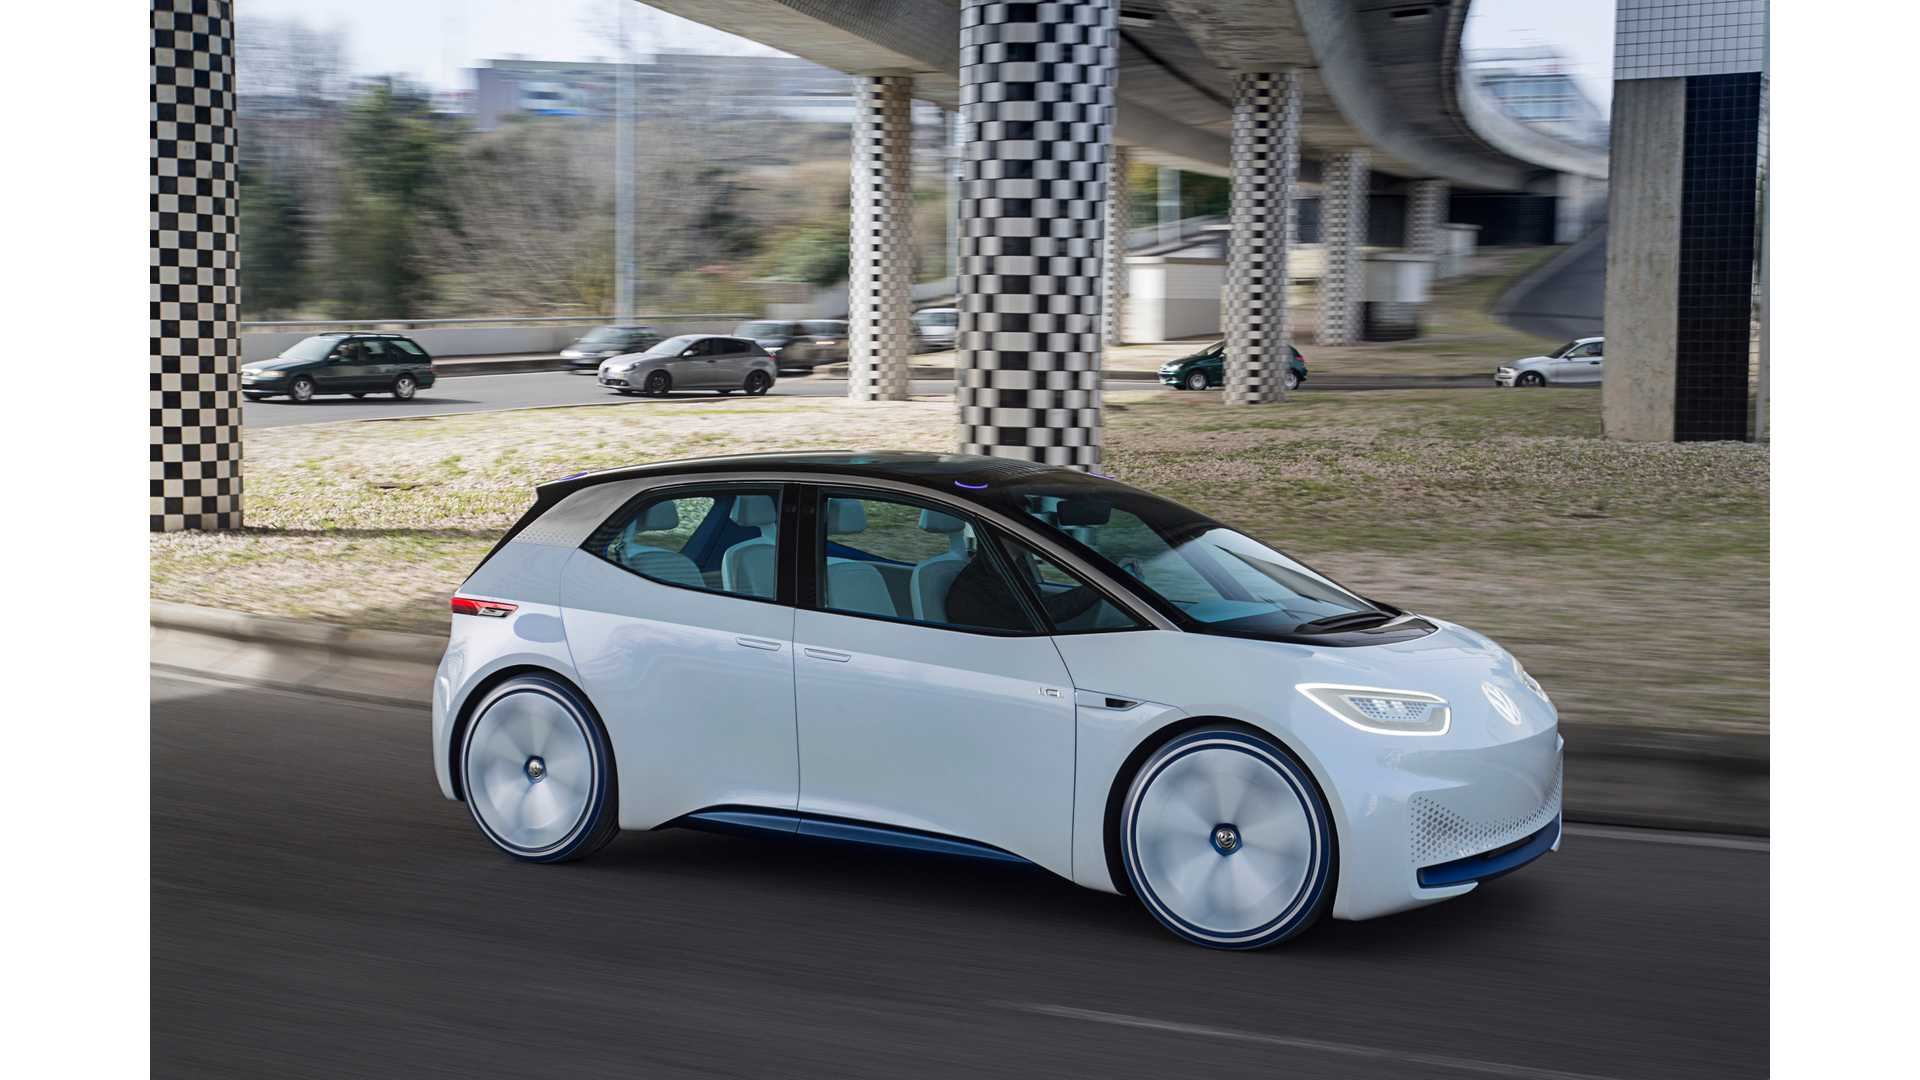 48 A Volkswagen Electric Car 2020 Speed Test